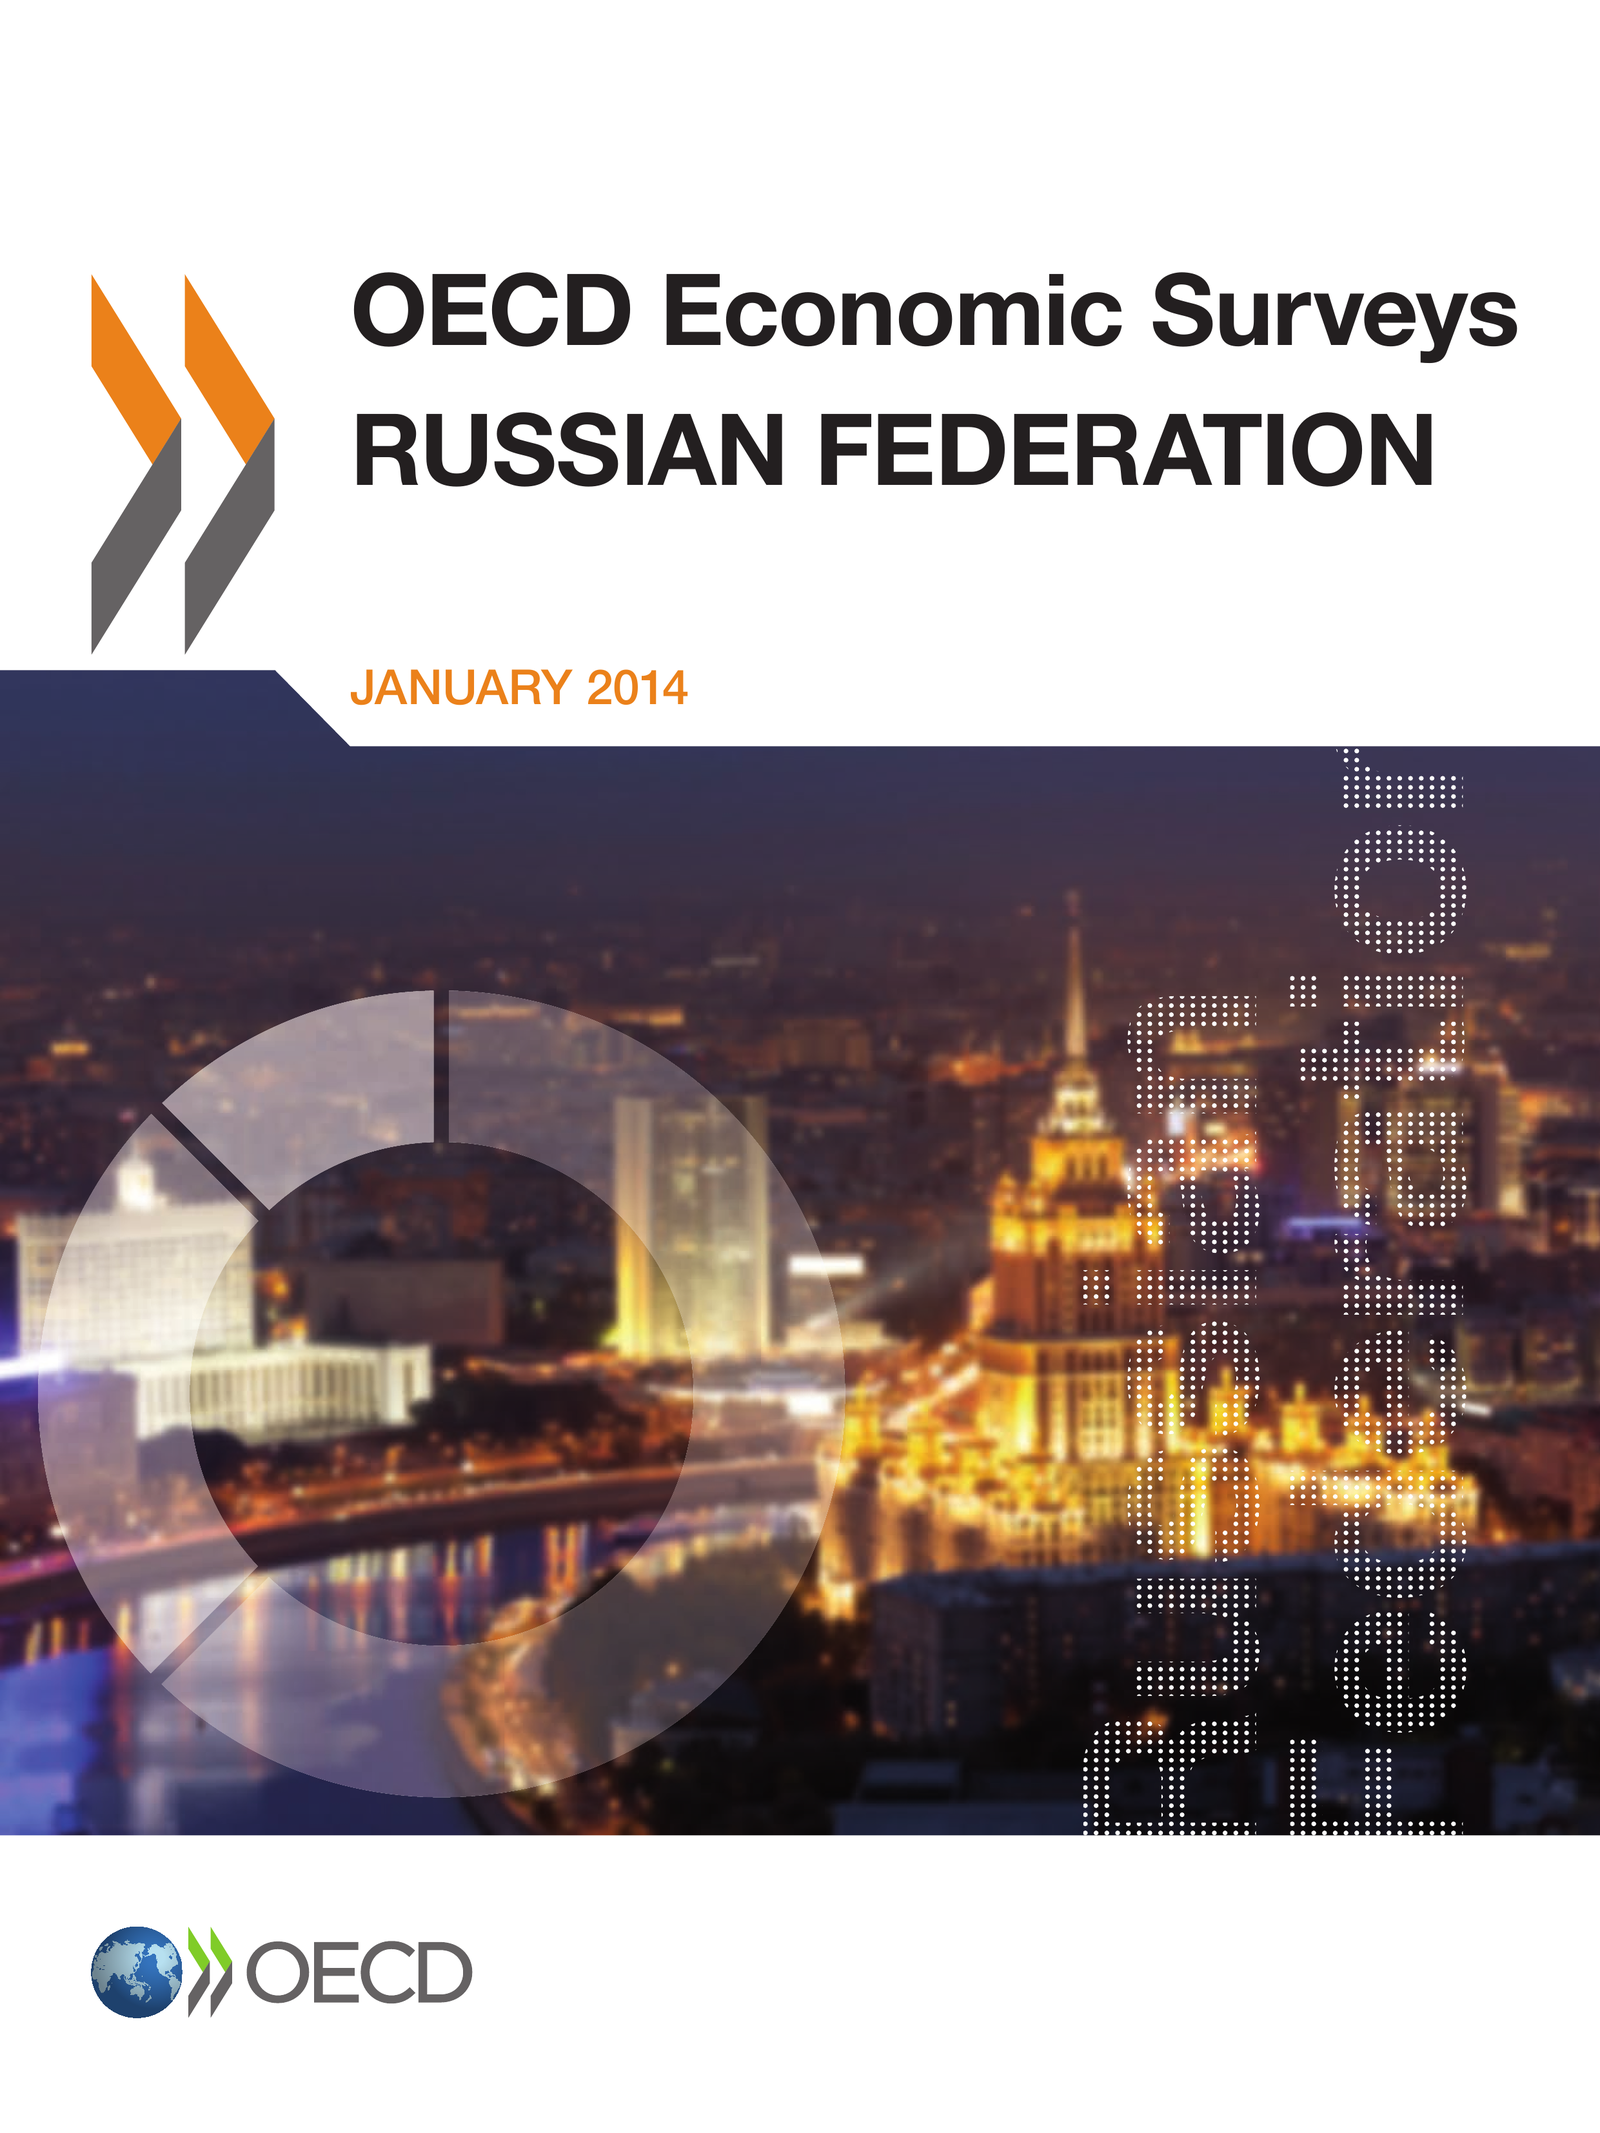 OECD Economic Surveys: Russian Federation 2013